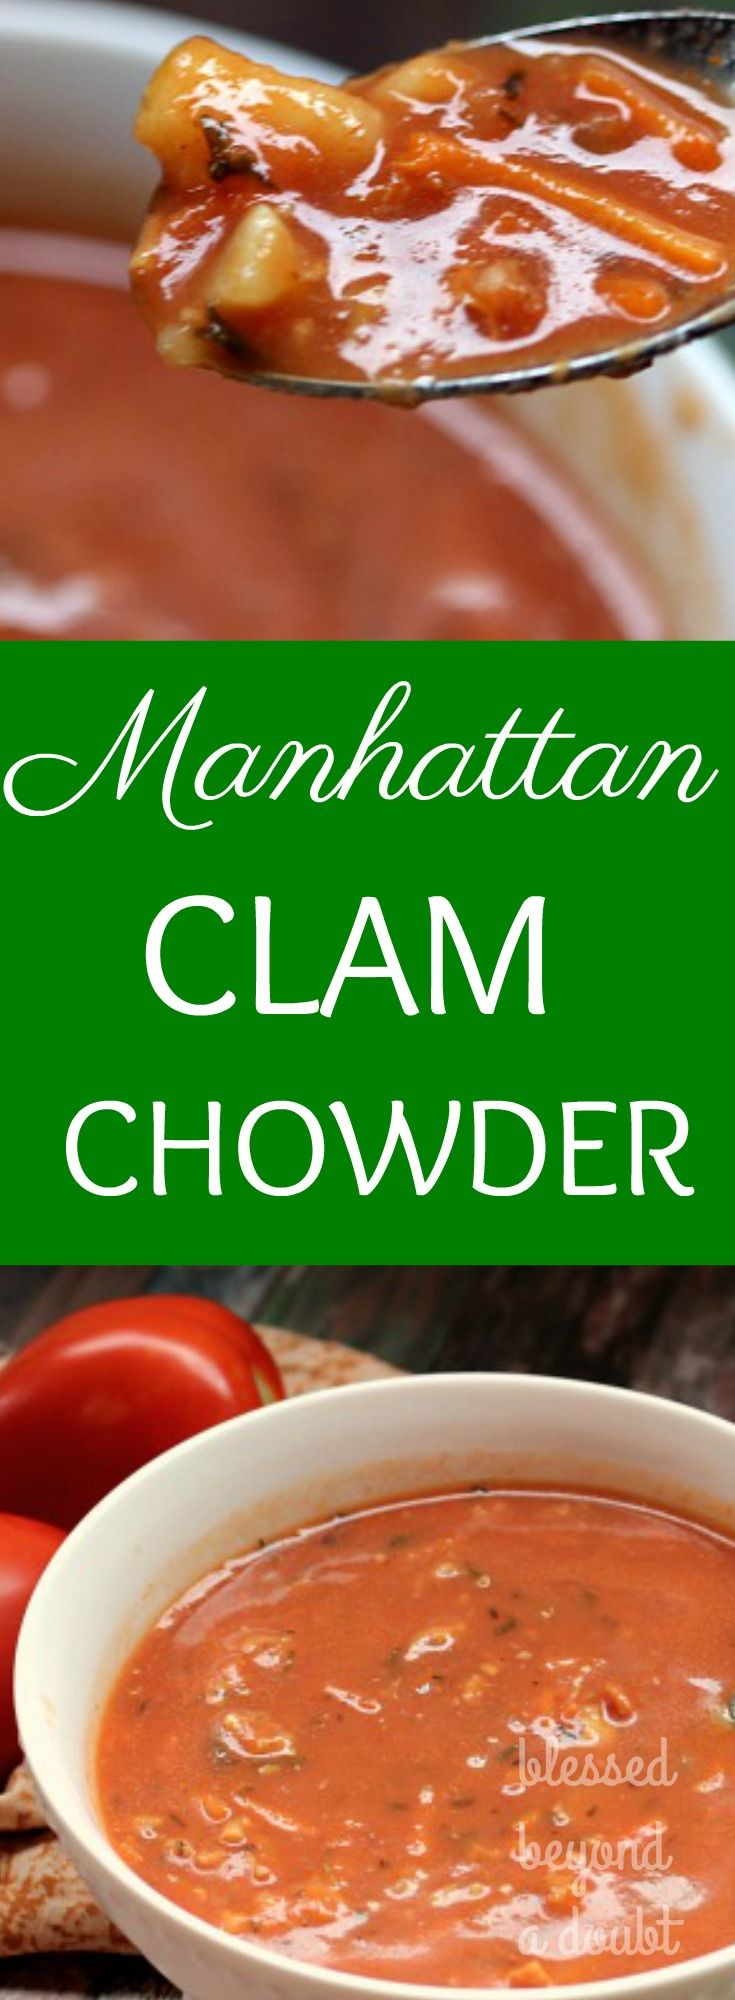 This is my favorite Manhattan Clam Chowder soup recipe. It's so tasty and so simple to make. My kids even liked it. Just serve with bread and a salad.